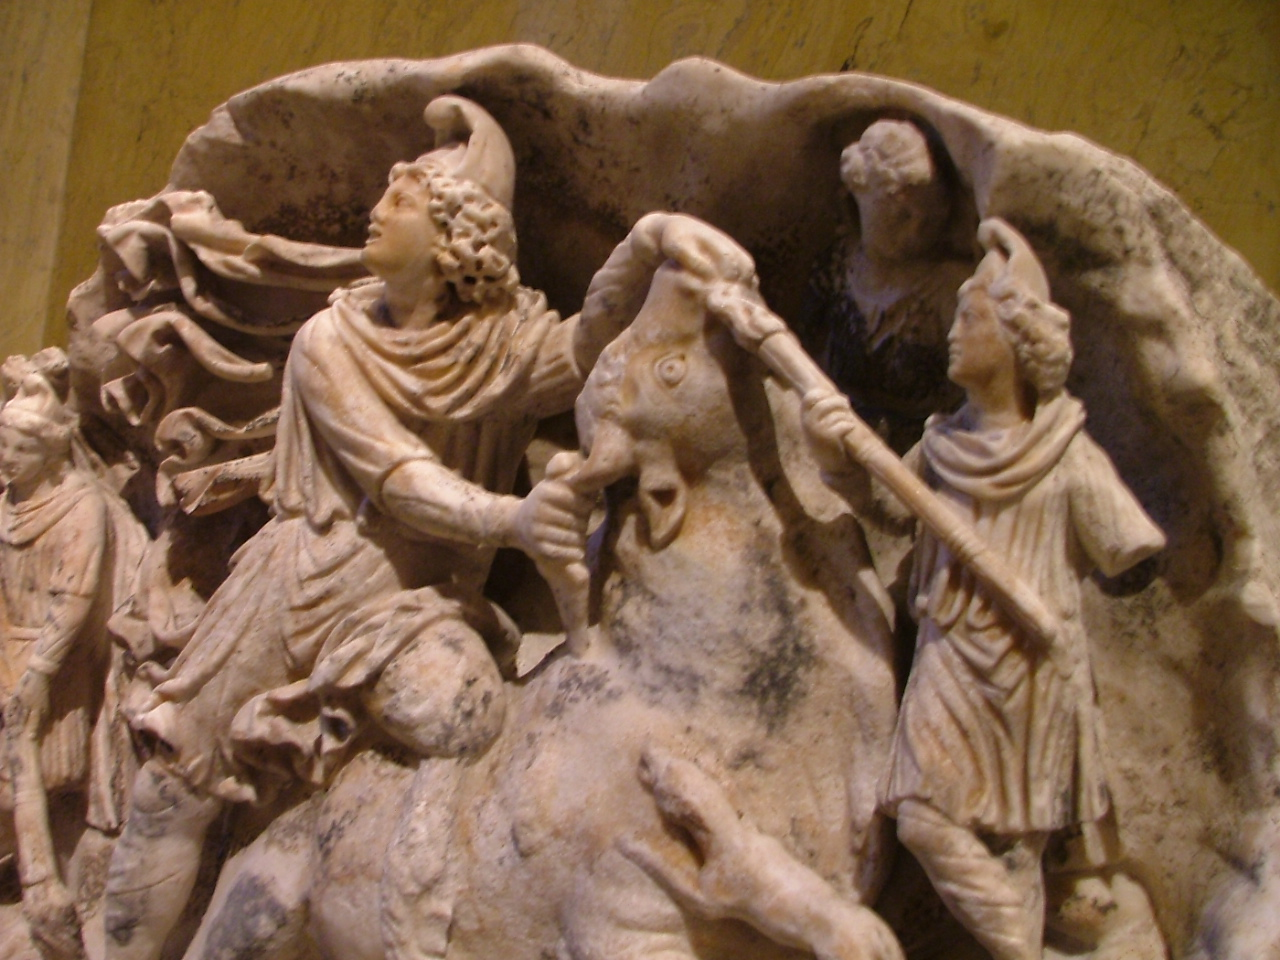 Mithras relief at the Kunsthistorishes Museum, Vienna (Click to enlarge)